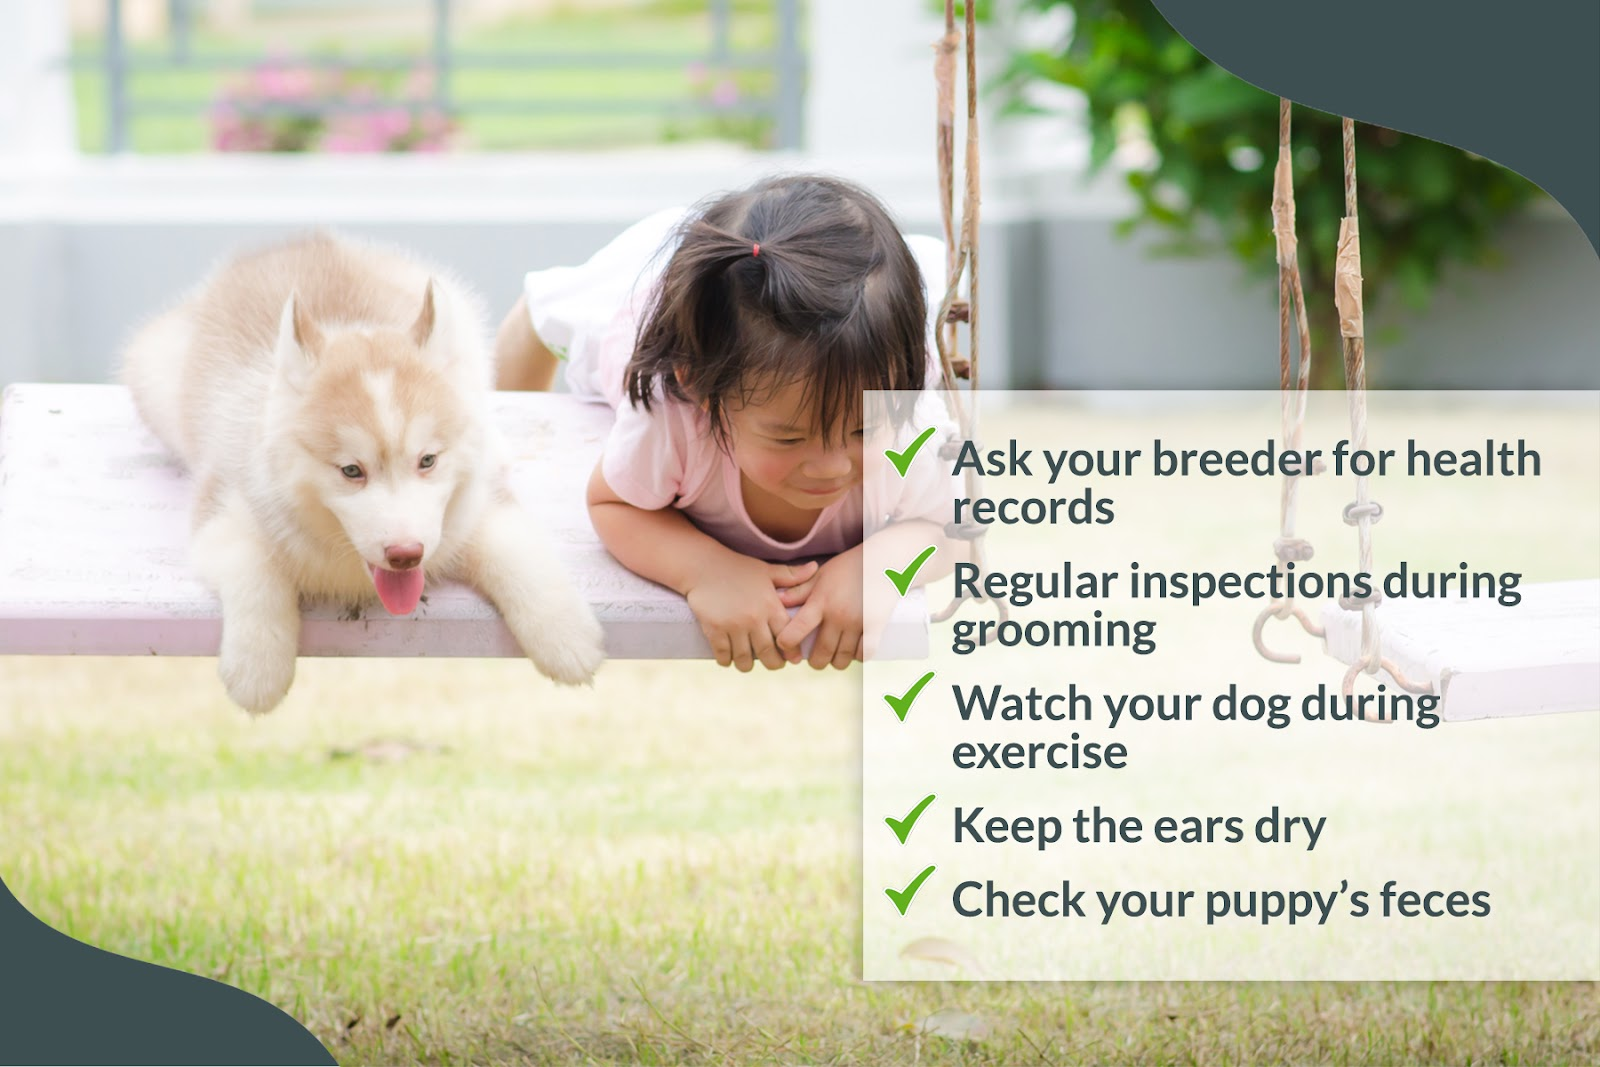 health check to perform on your dog at home